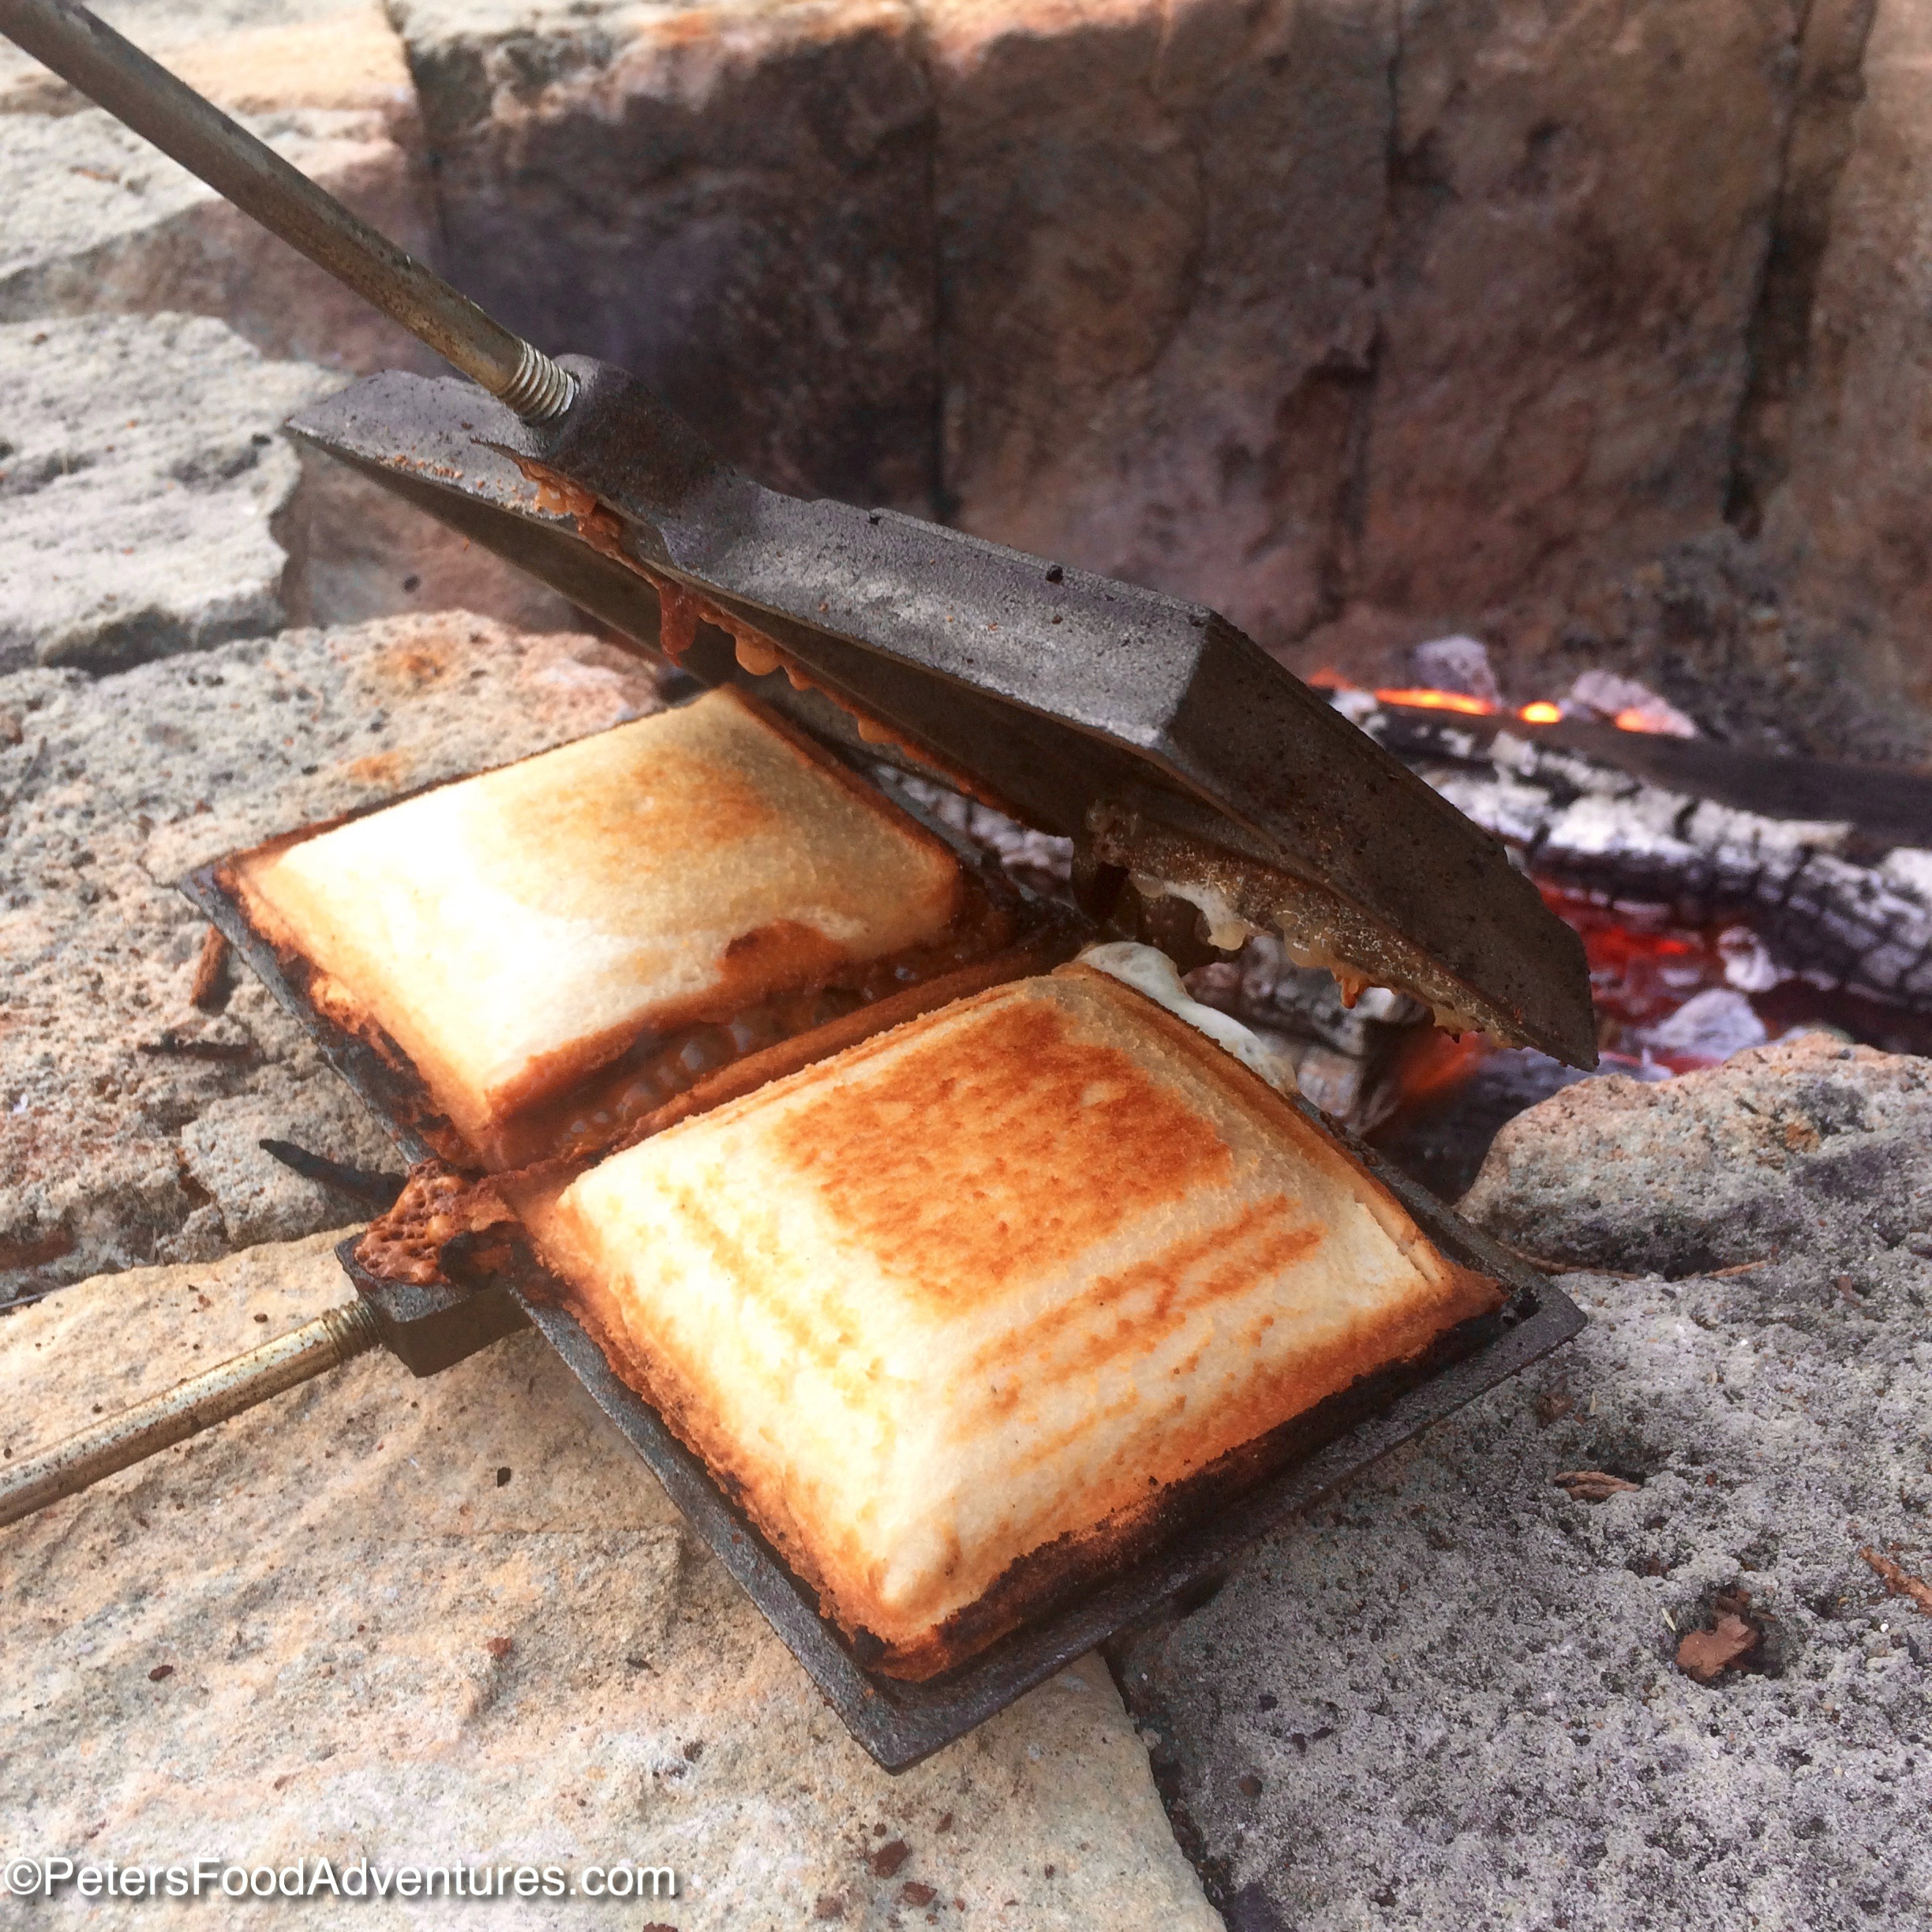 Top 10 Great Camping Recipes: Peter's Food Adventures